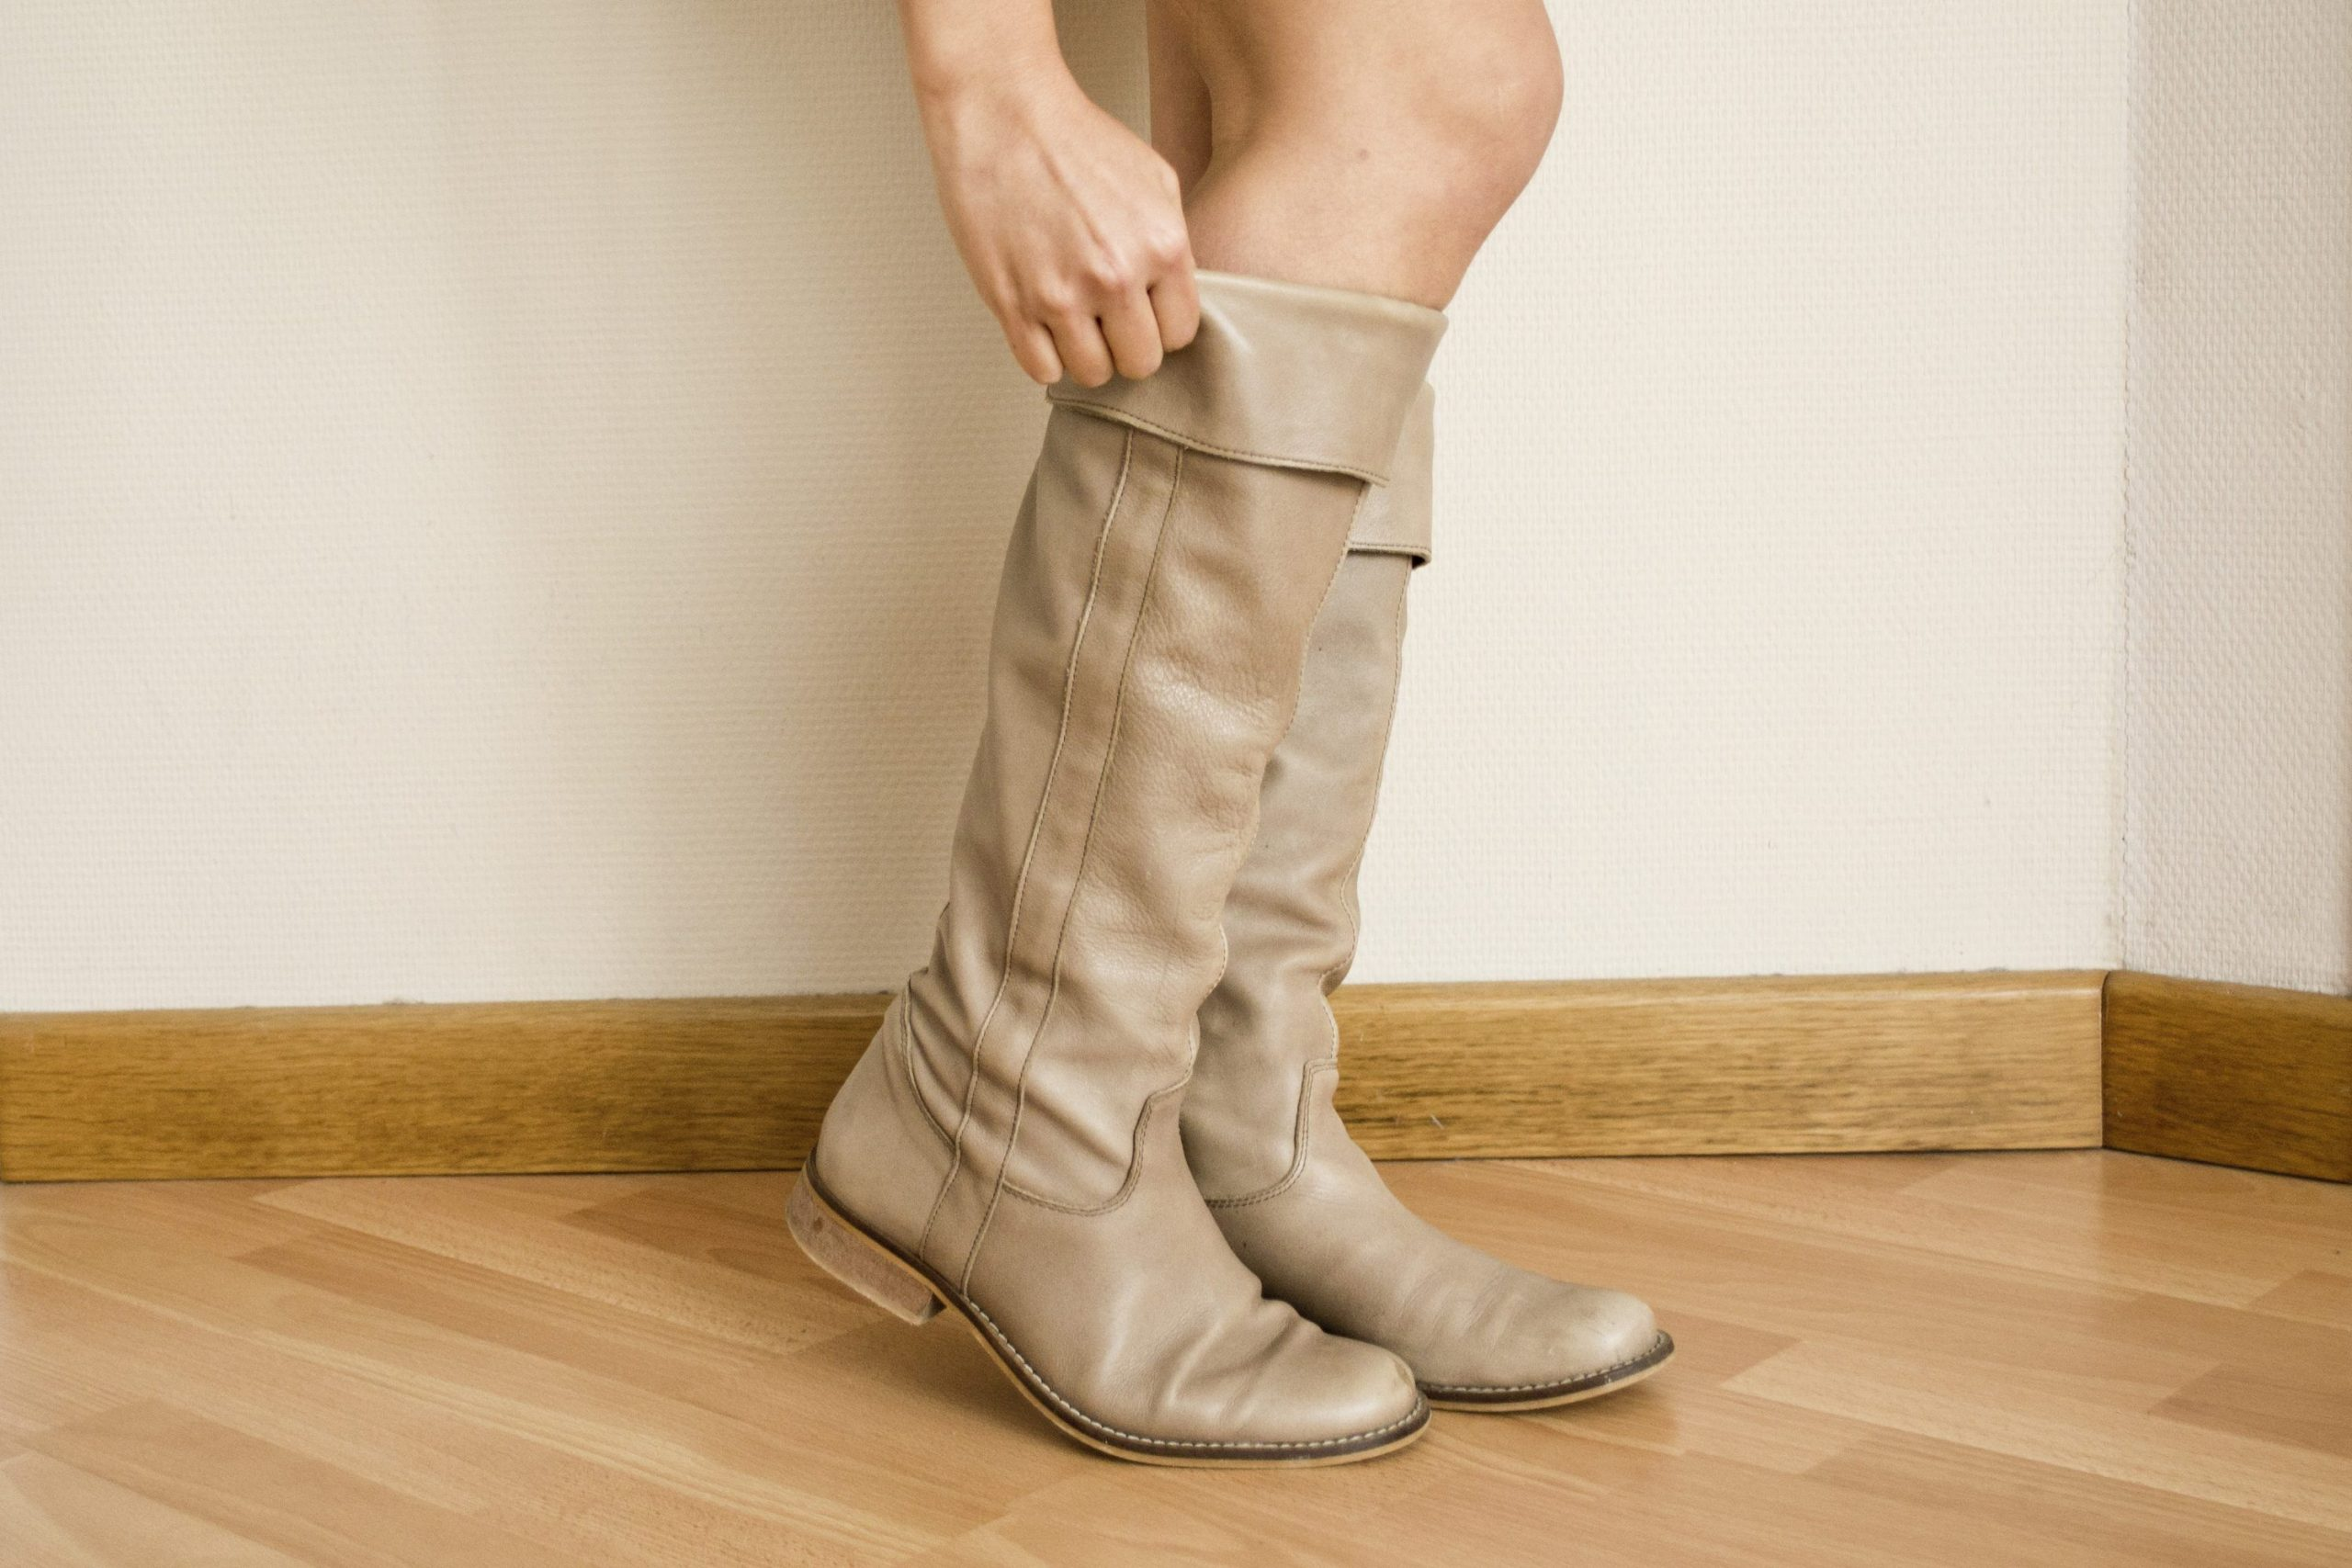 Park Art|My WordPress Blog_How To Stretch Cowboy Boots With Alcohol